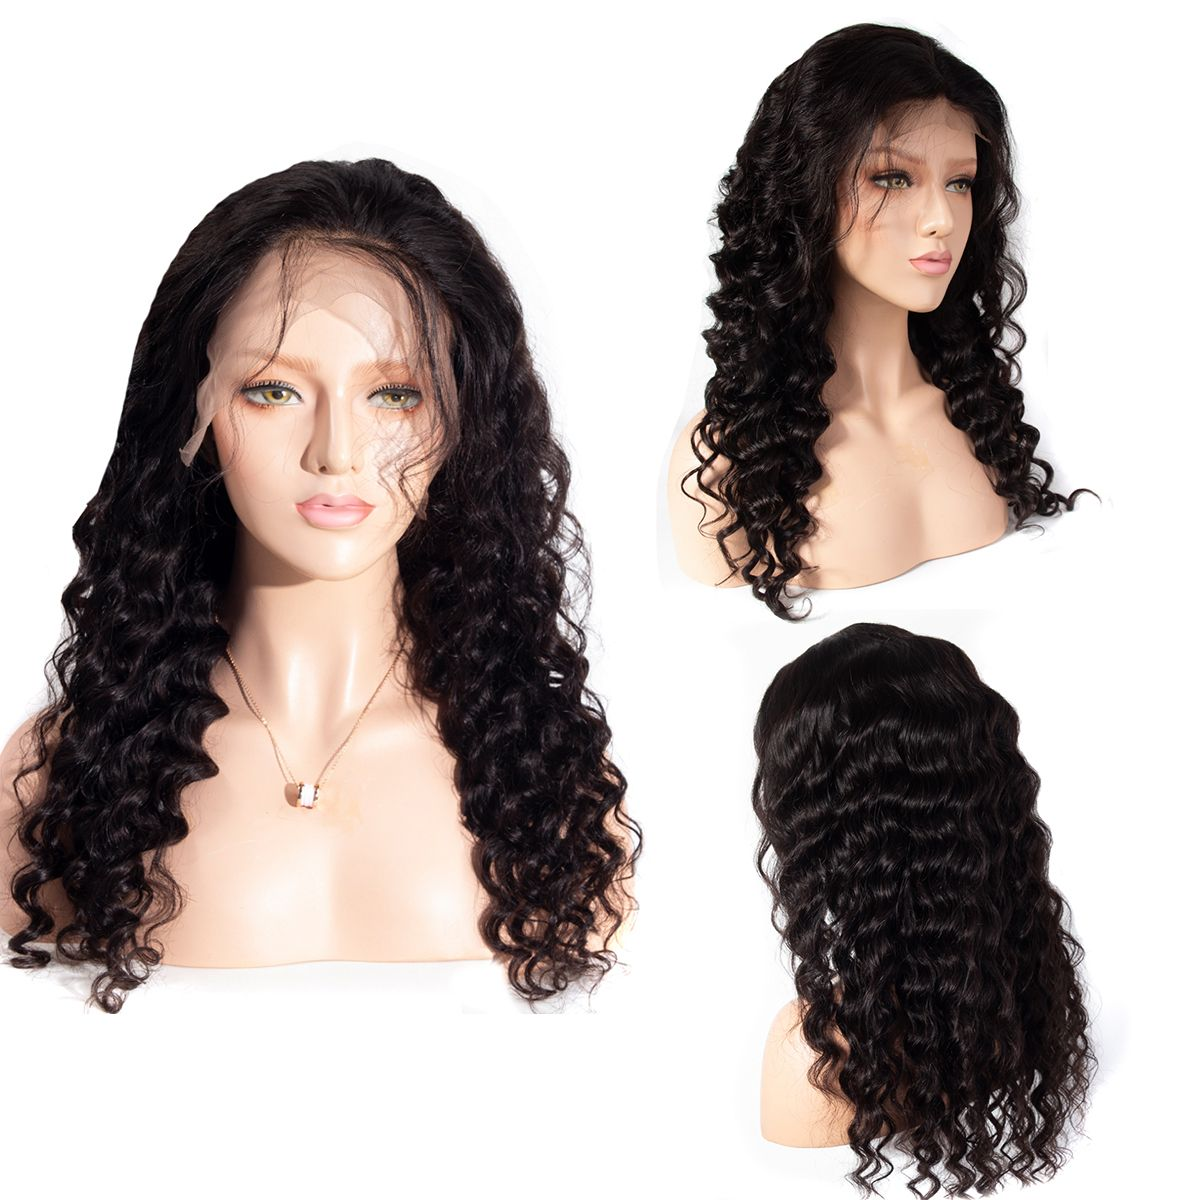 Loose-deep 13x4 lace front wig